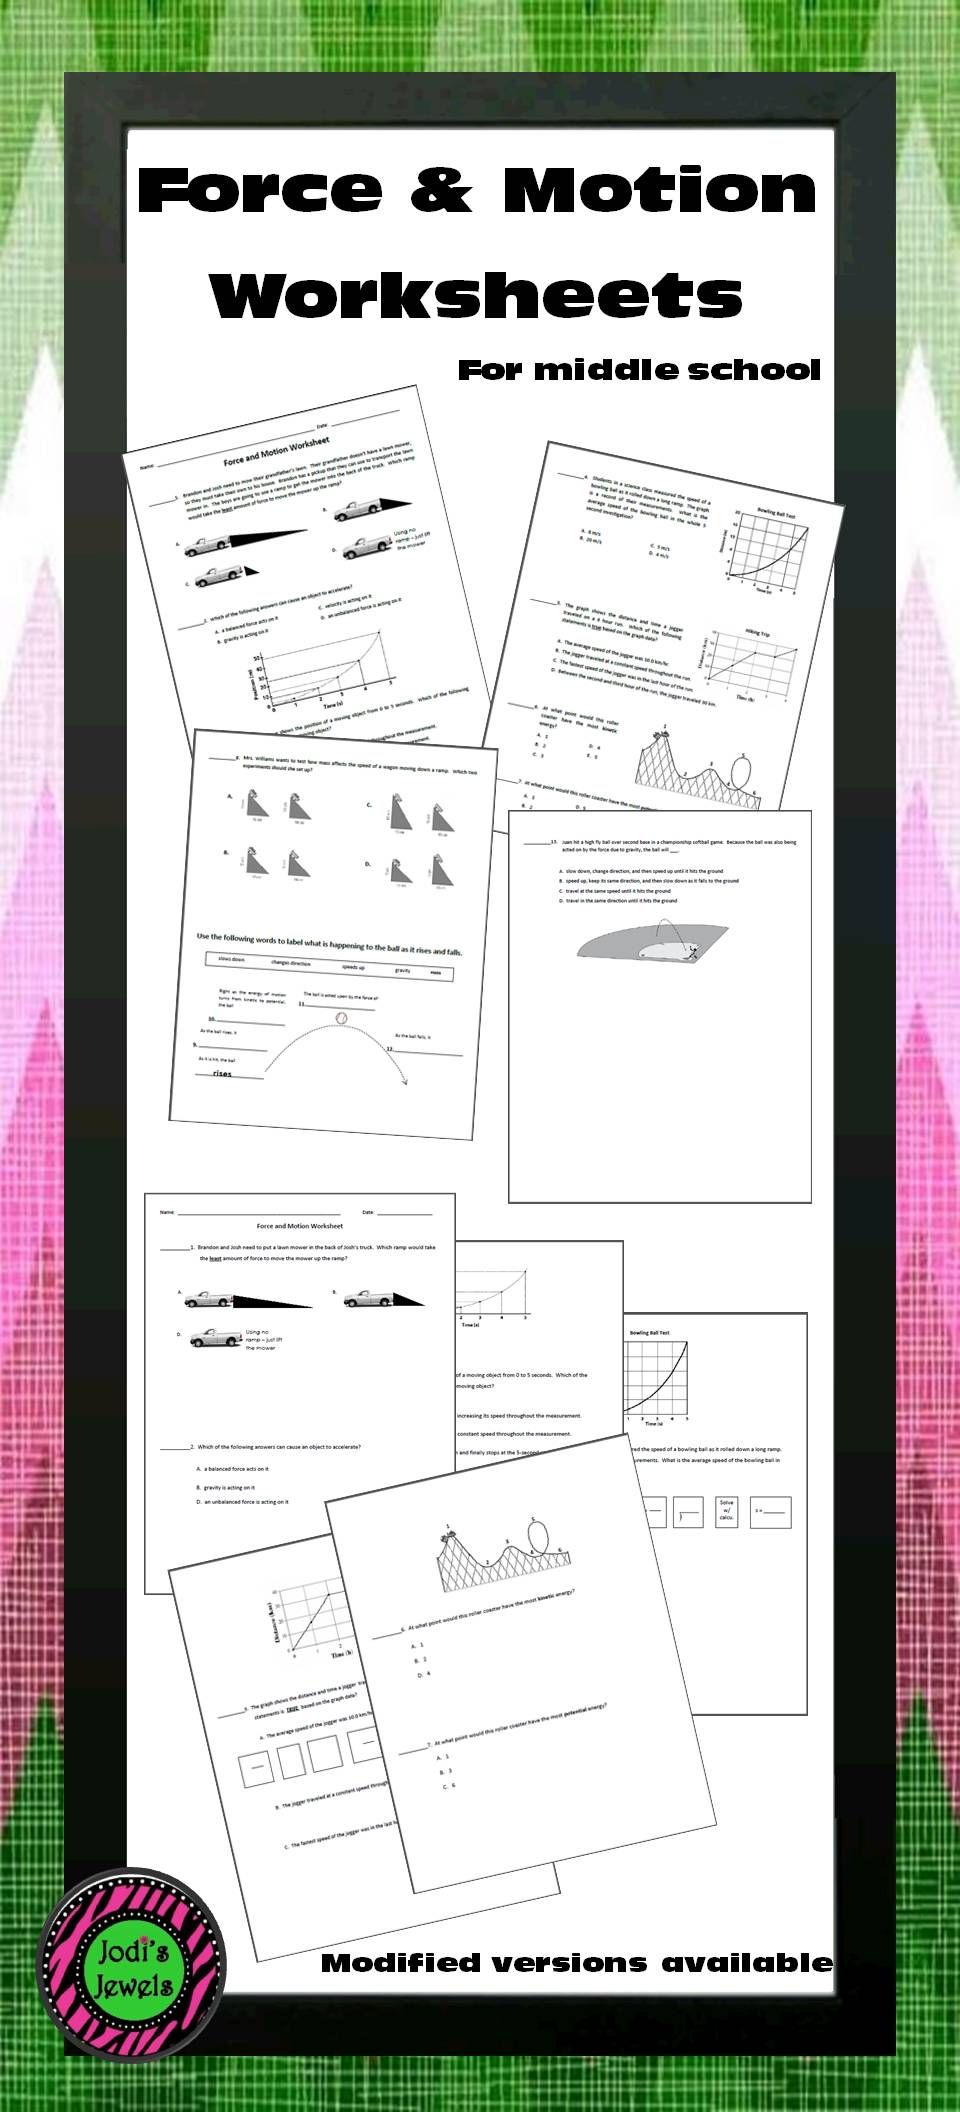 Worksheets Analyzing Data Worksheet force and motion worksheet roah pinterest graphs worksheets for middle school students include interpreting data calculating speed average analyzing mo